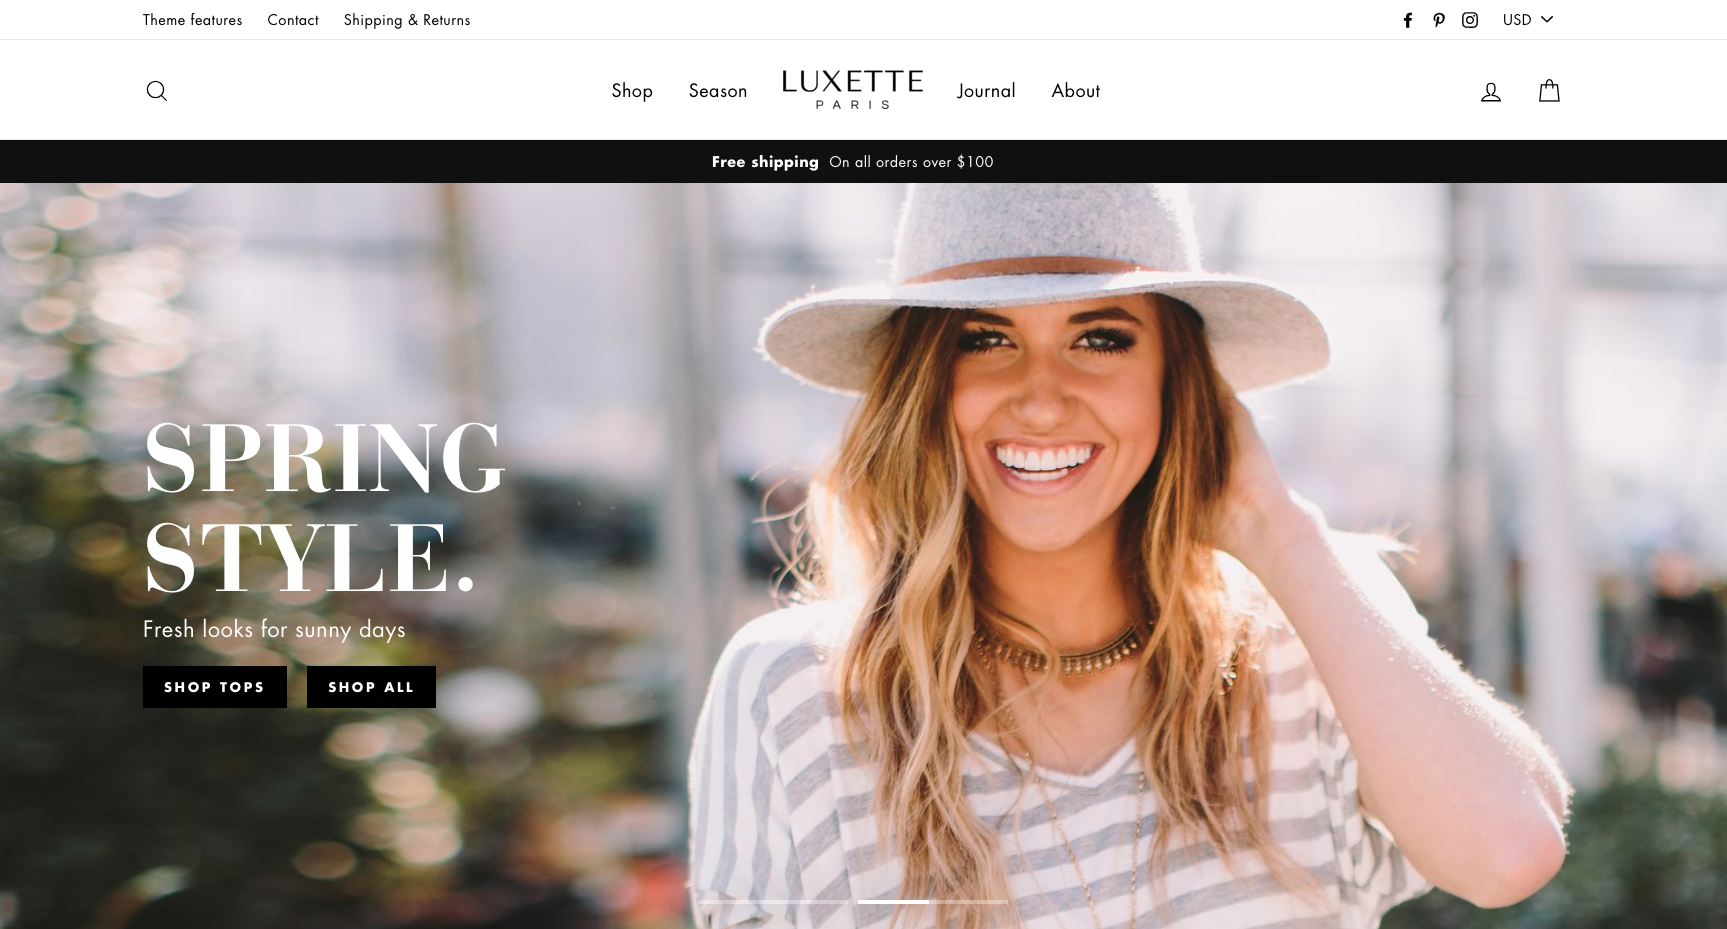 Katana MRP is a great little addition to make the most of your Shopify templates.